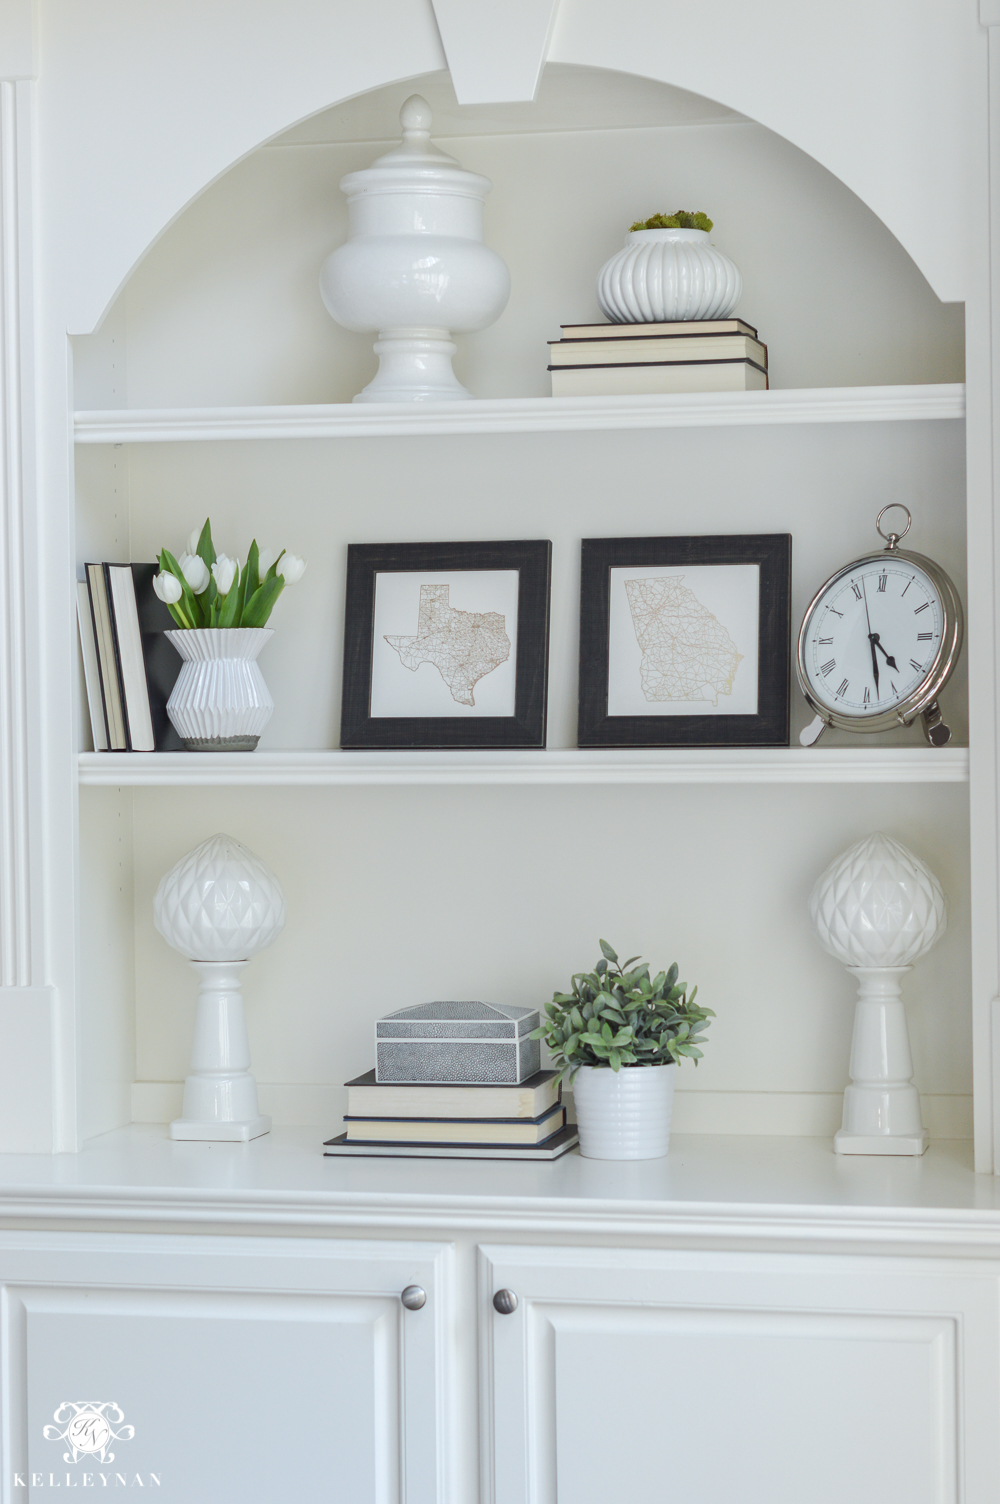 Shades of Summer Home Tour with Neutrals and Naturals- shelf styling